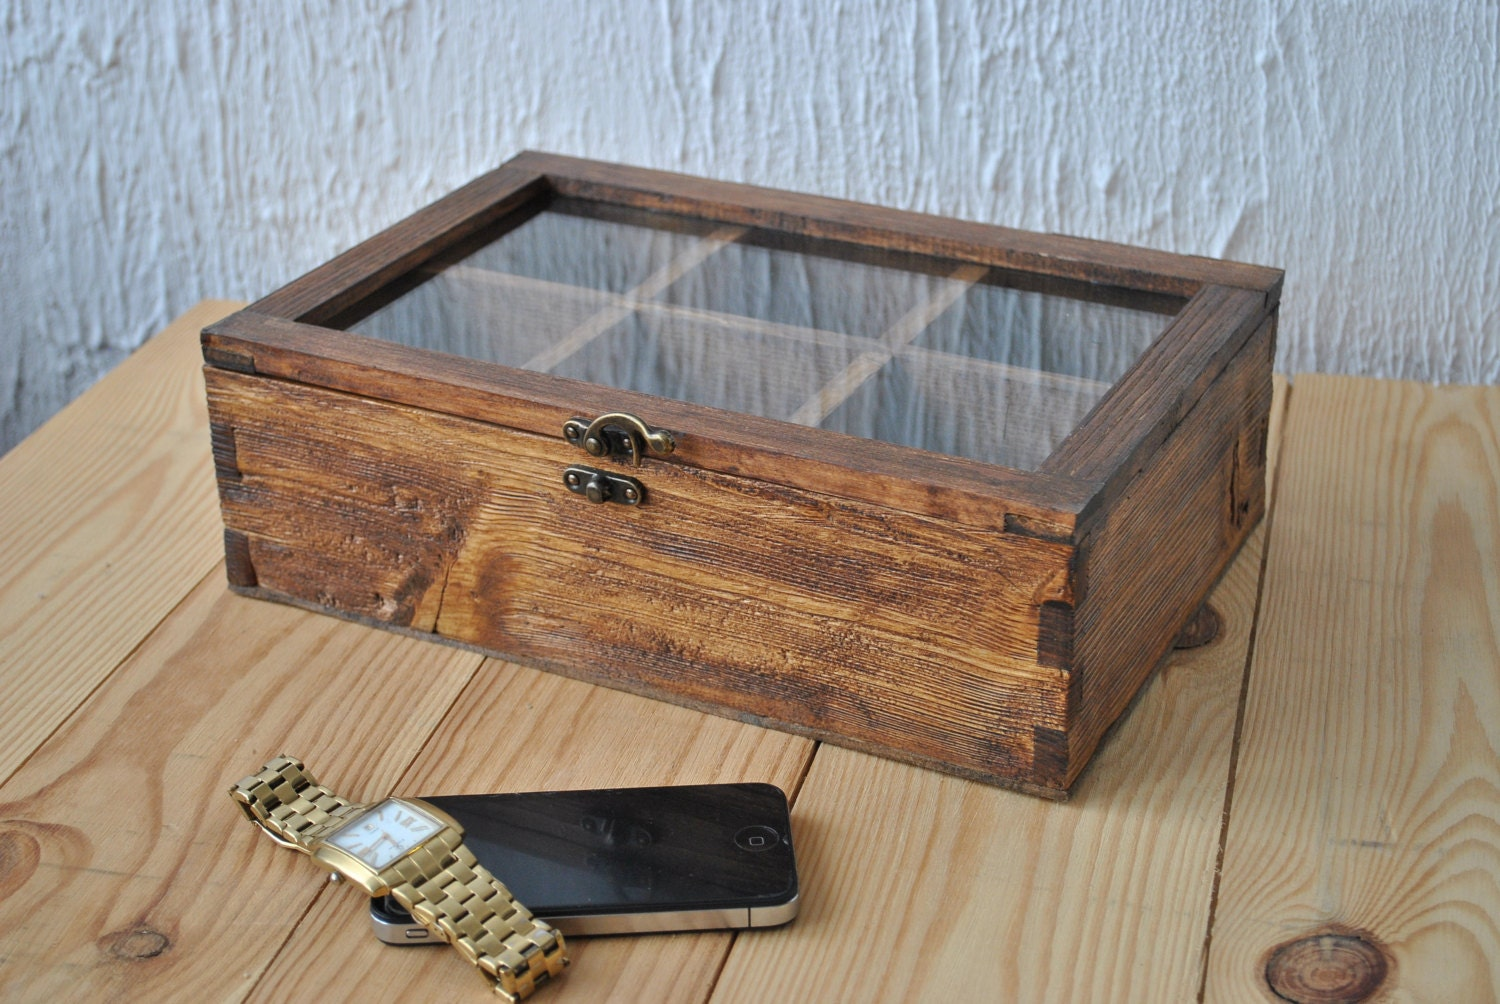 wood watch rustic men s watch box for 6 watches wood watch box watch case watch box for men watch holder